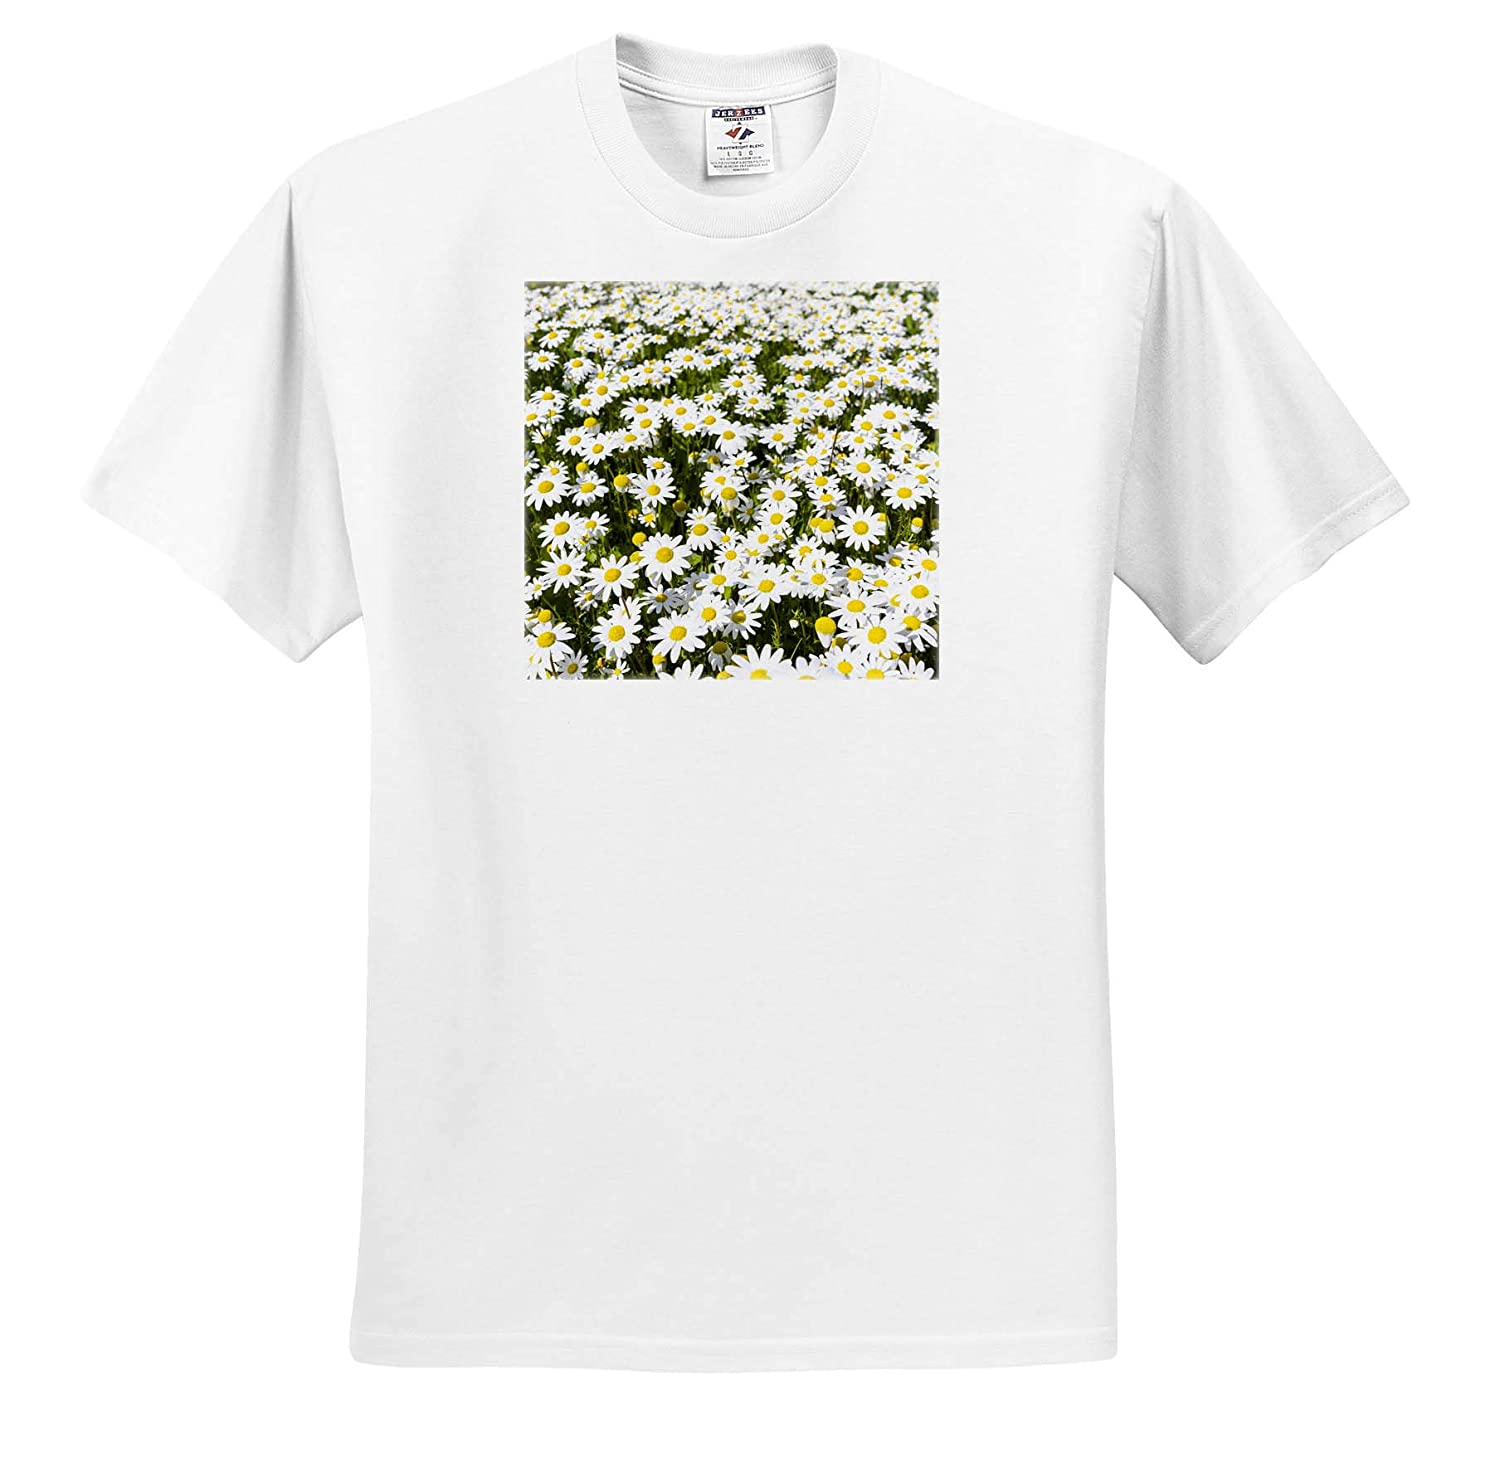 ts/_313830 Portugal Adult T-Shirt XL 3dRose Danita Delimont Flowers Meadow Near Marvao Scentless False Mayweed